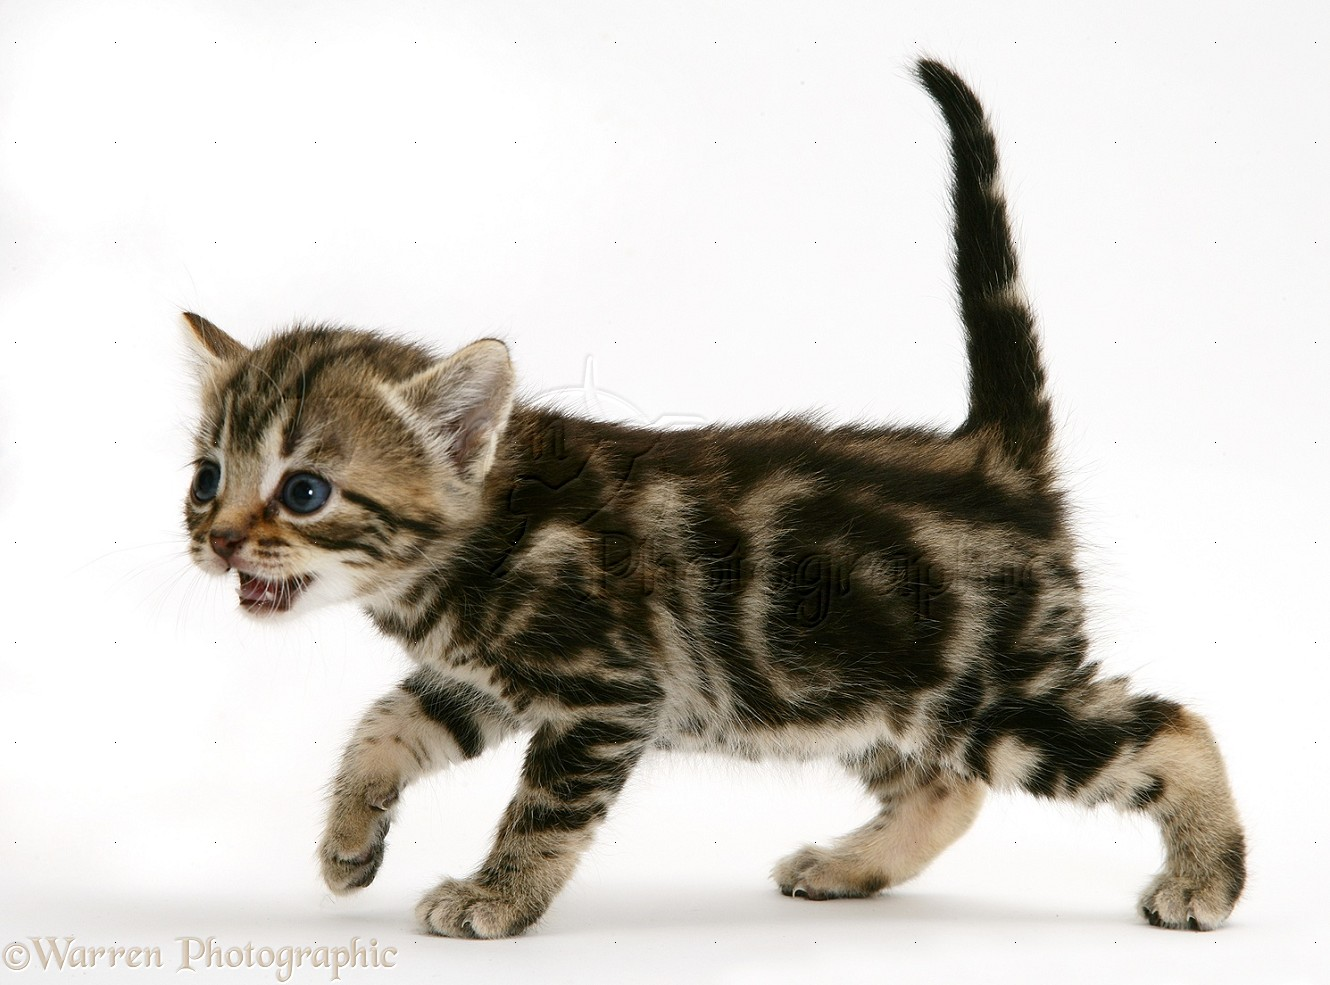 brown tabby kitten miaowing photo wp15361